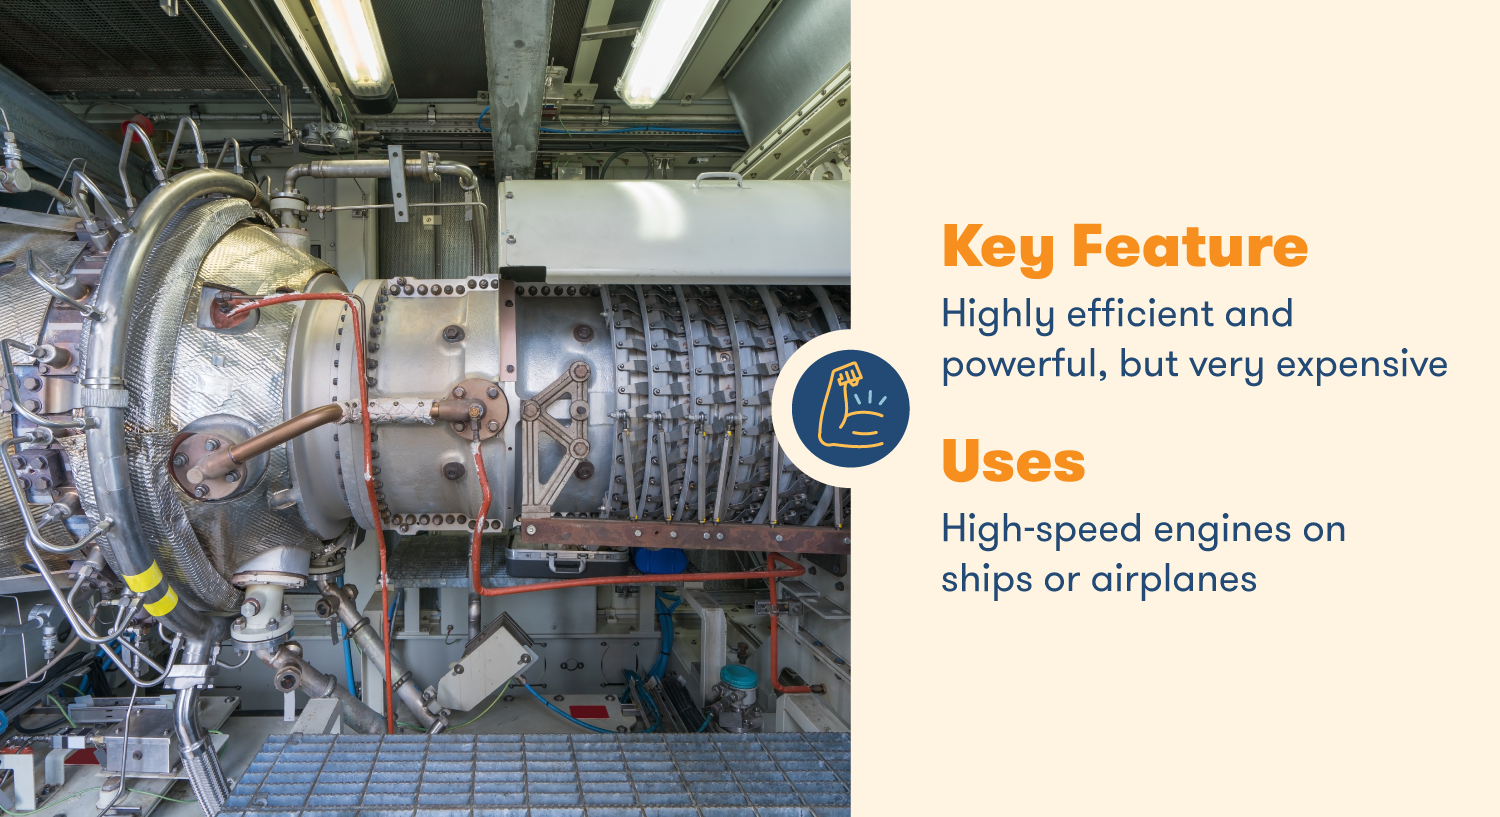 Axial air compressors are highly efficient but expensive compressors used for high-speed engines on ships and airplanes.